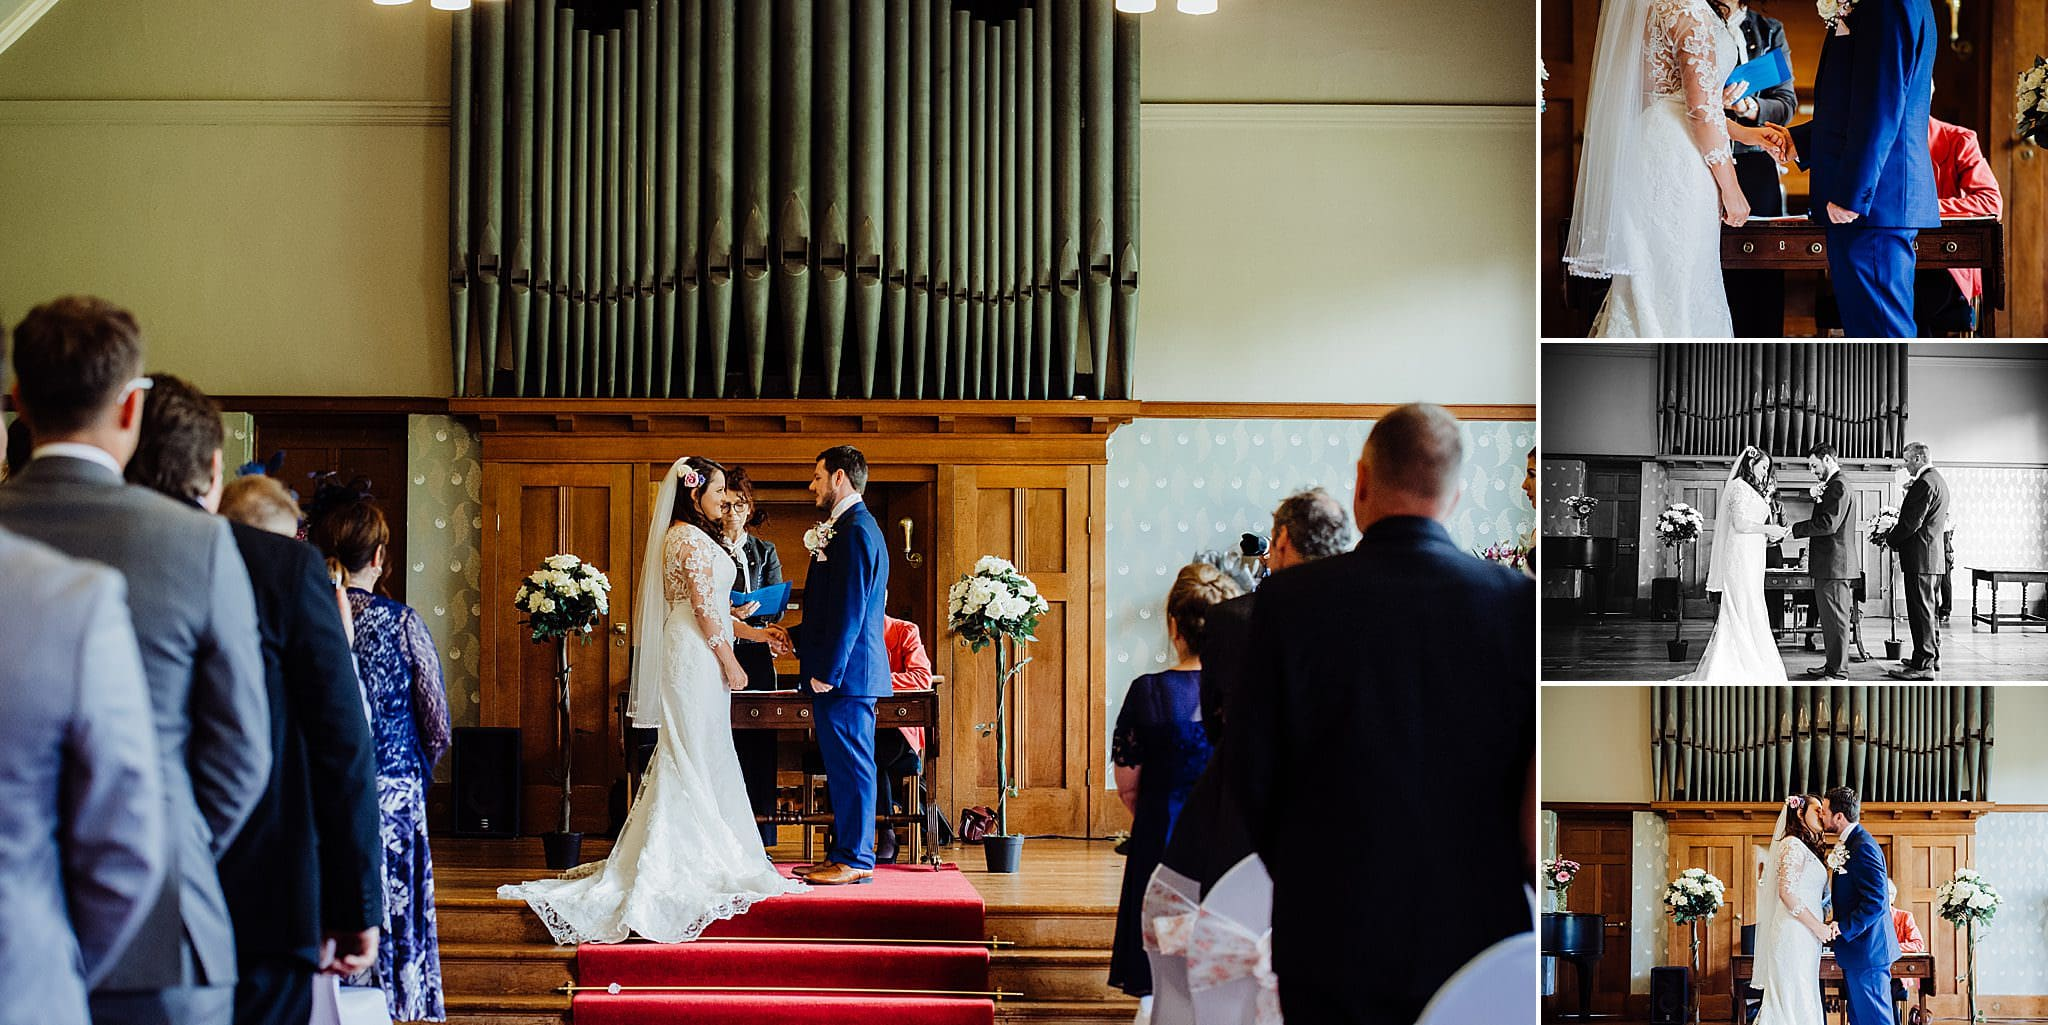 Bride and groom stood in front of the organ holding hands during their wedding ceremony at Gregnog Hall